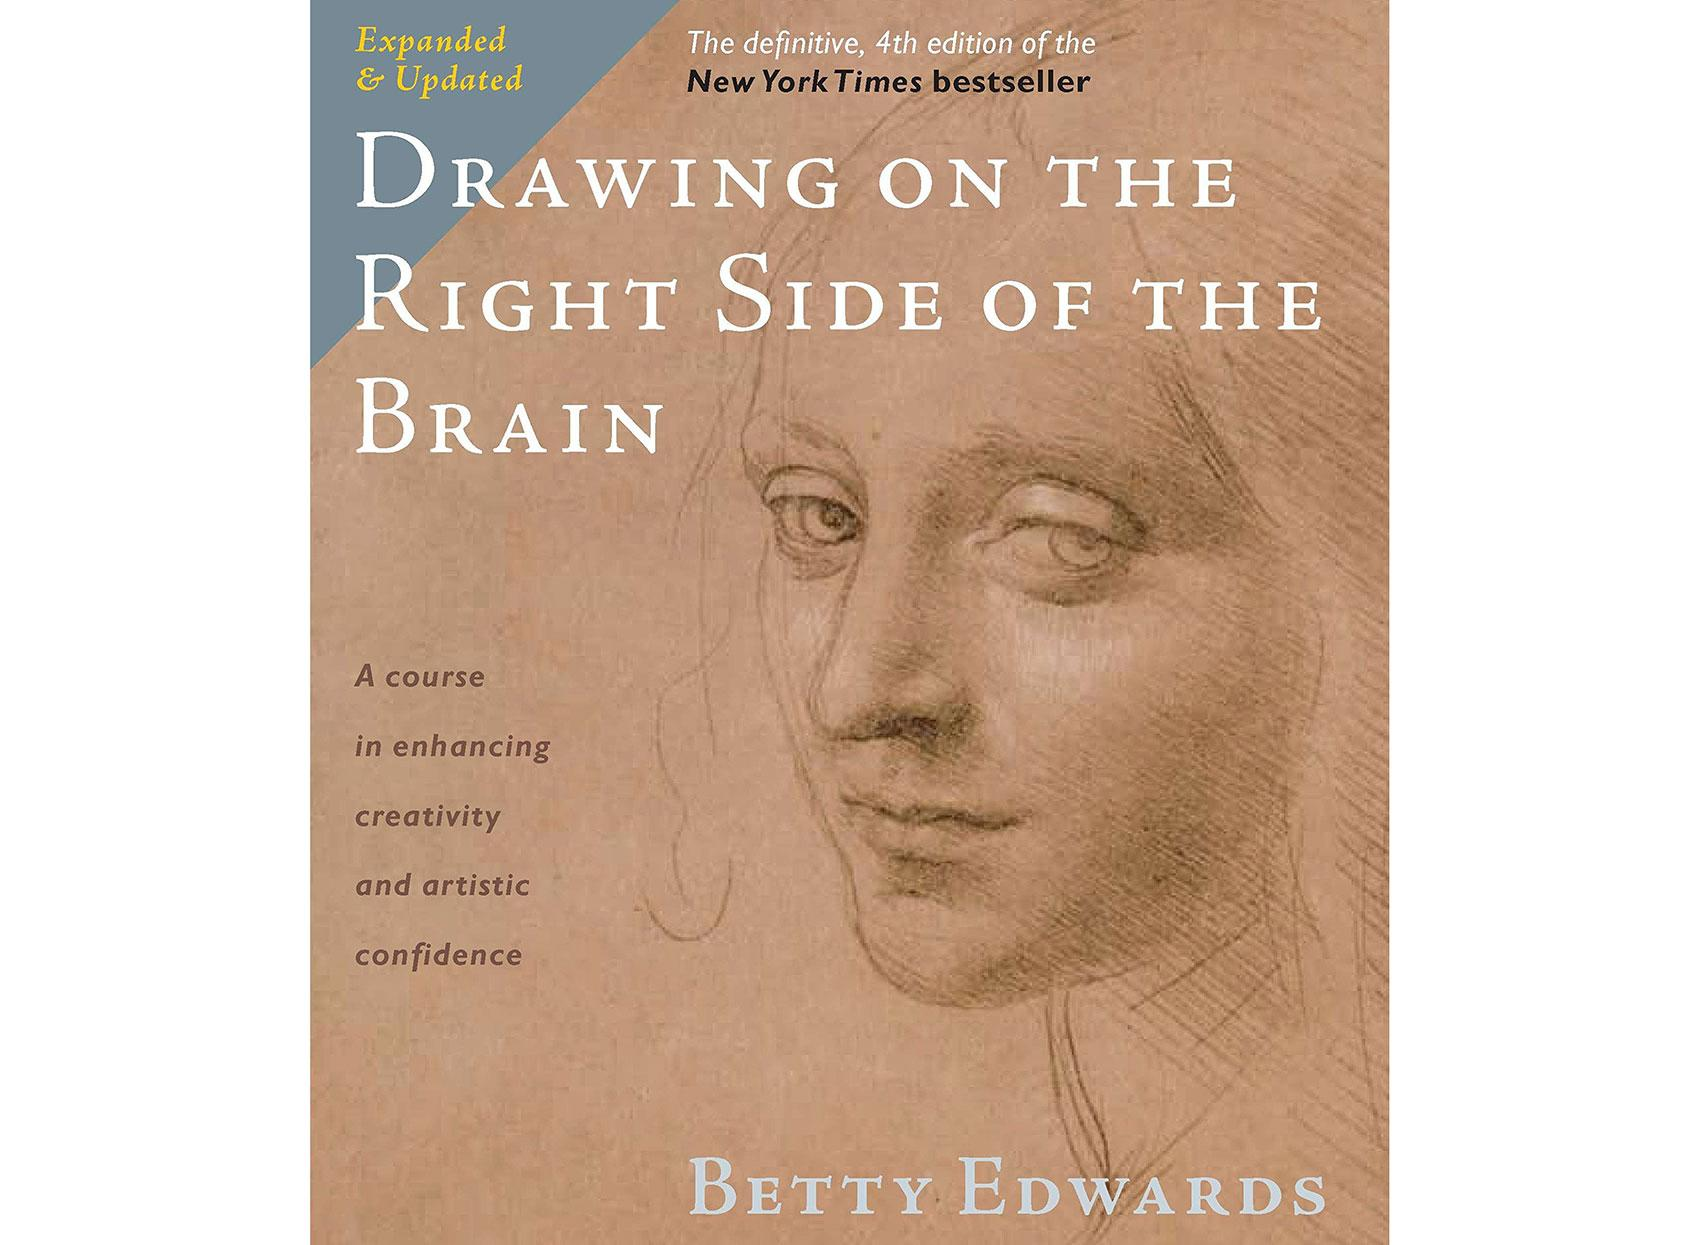 Best drawing books: Drawing on the right side of the brain